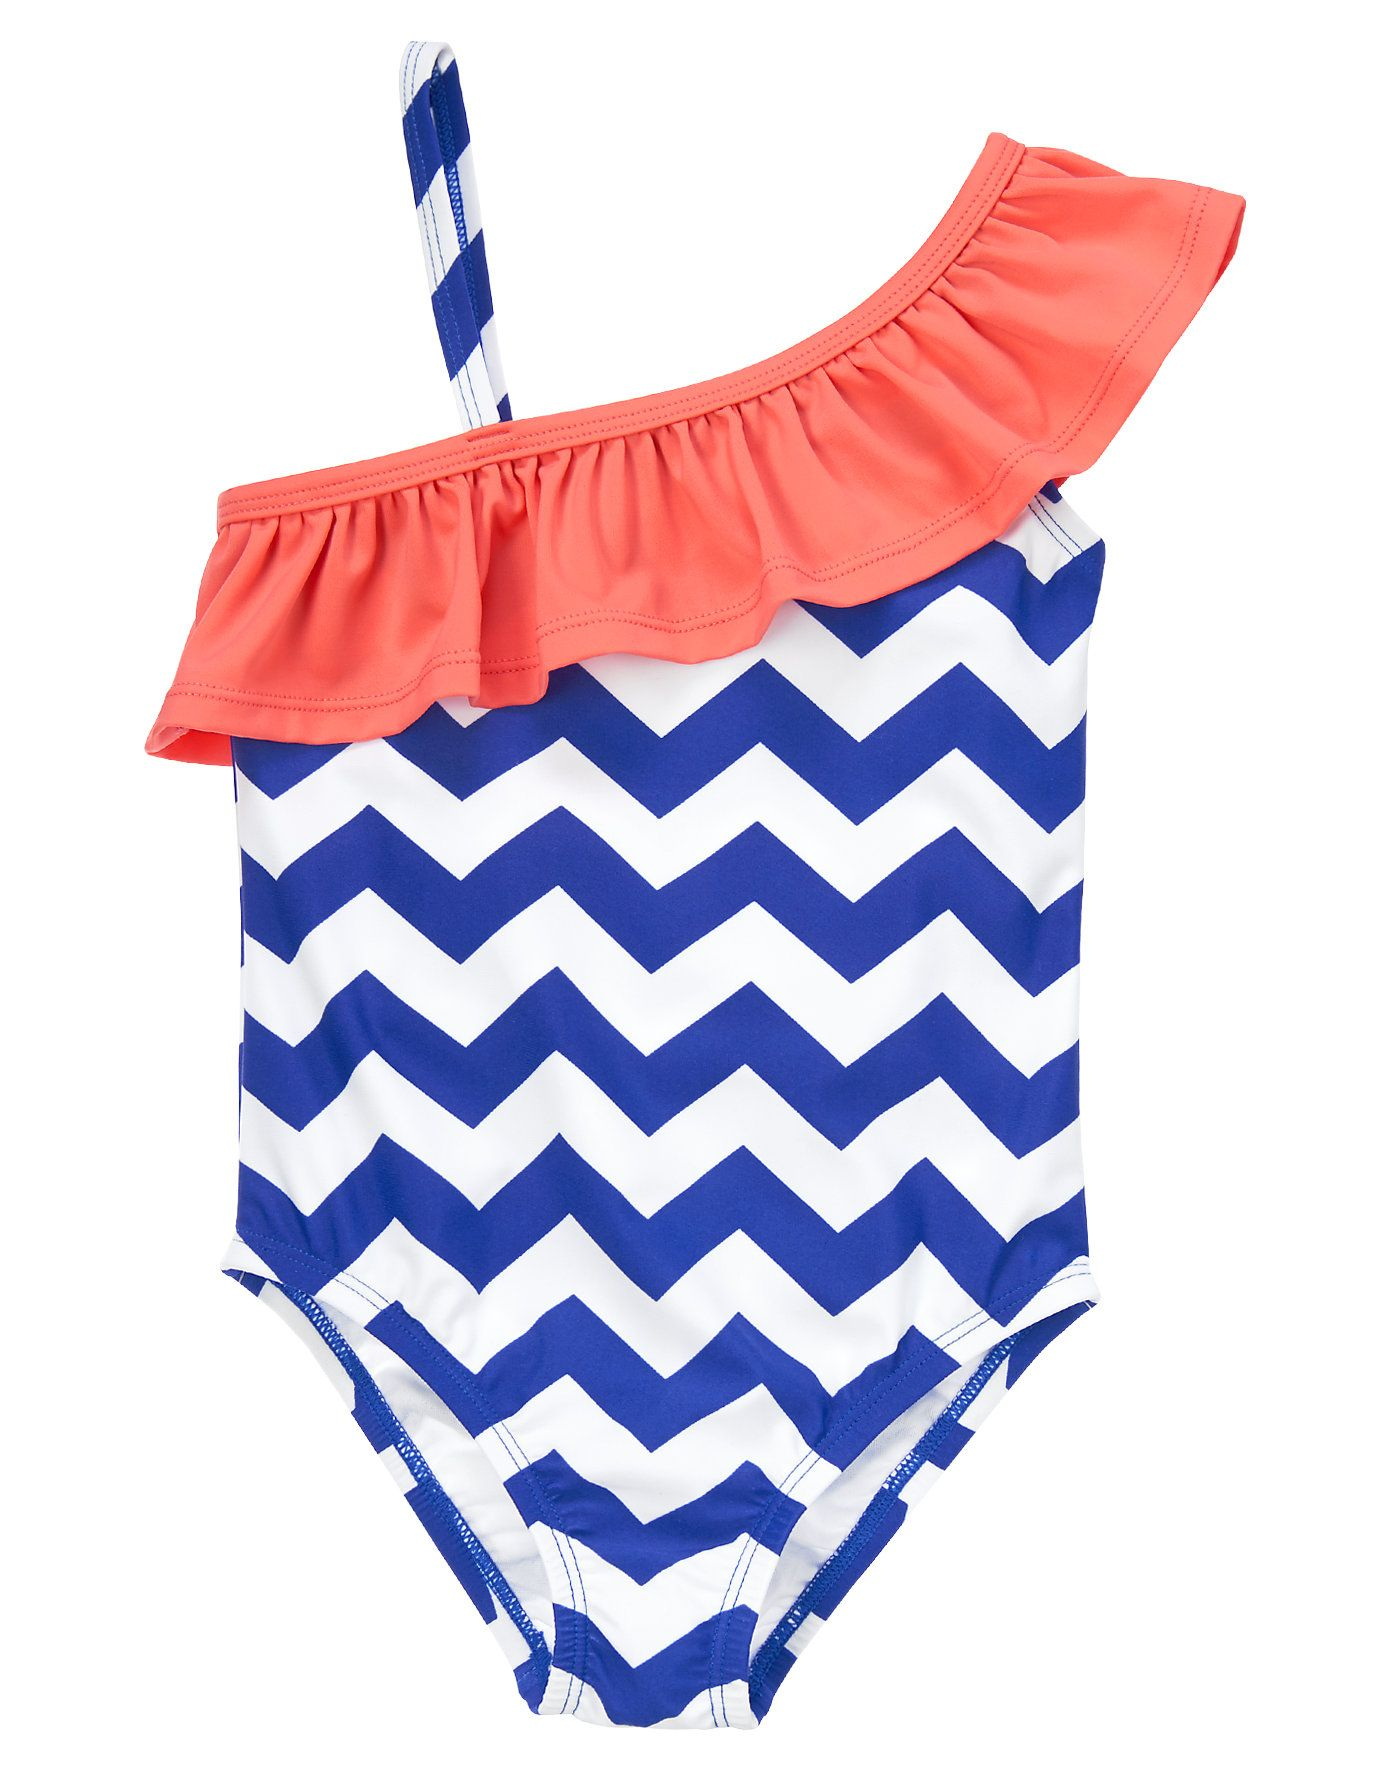 She dives into the season s style in our chevron swimsuit Bright